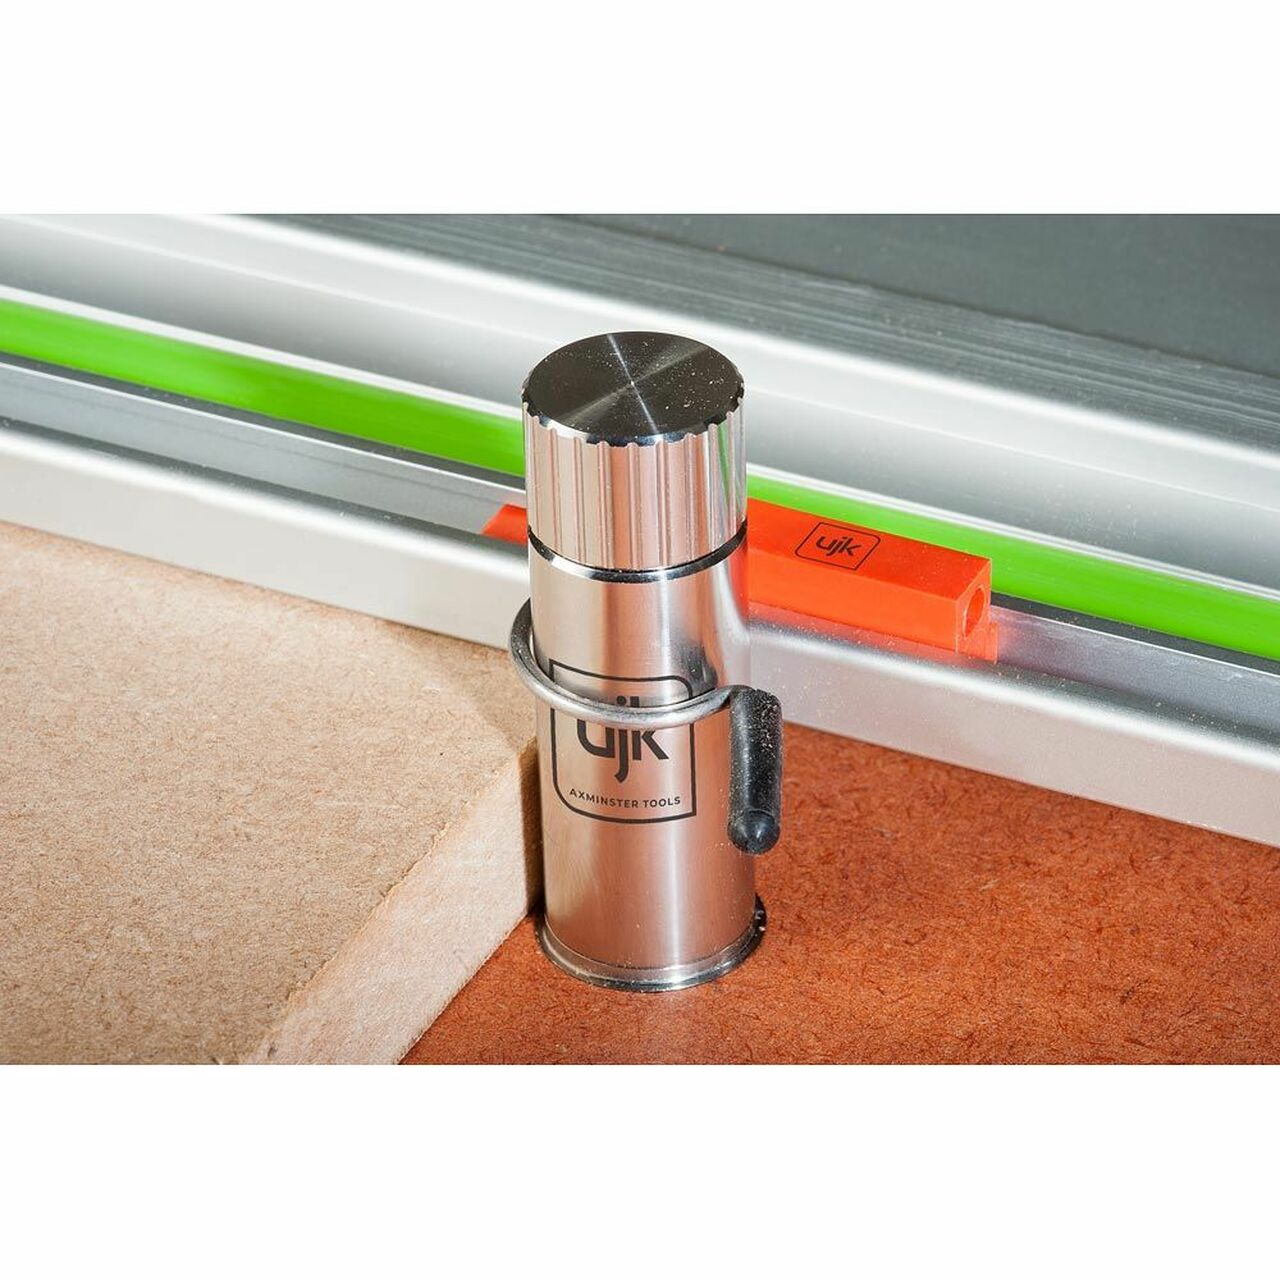 The Parf Super Dog can be used with the UJK Dog Rail Clips to hold your guide rail to your 20mm worktop.